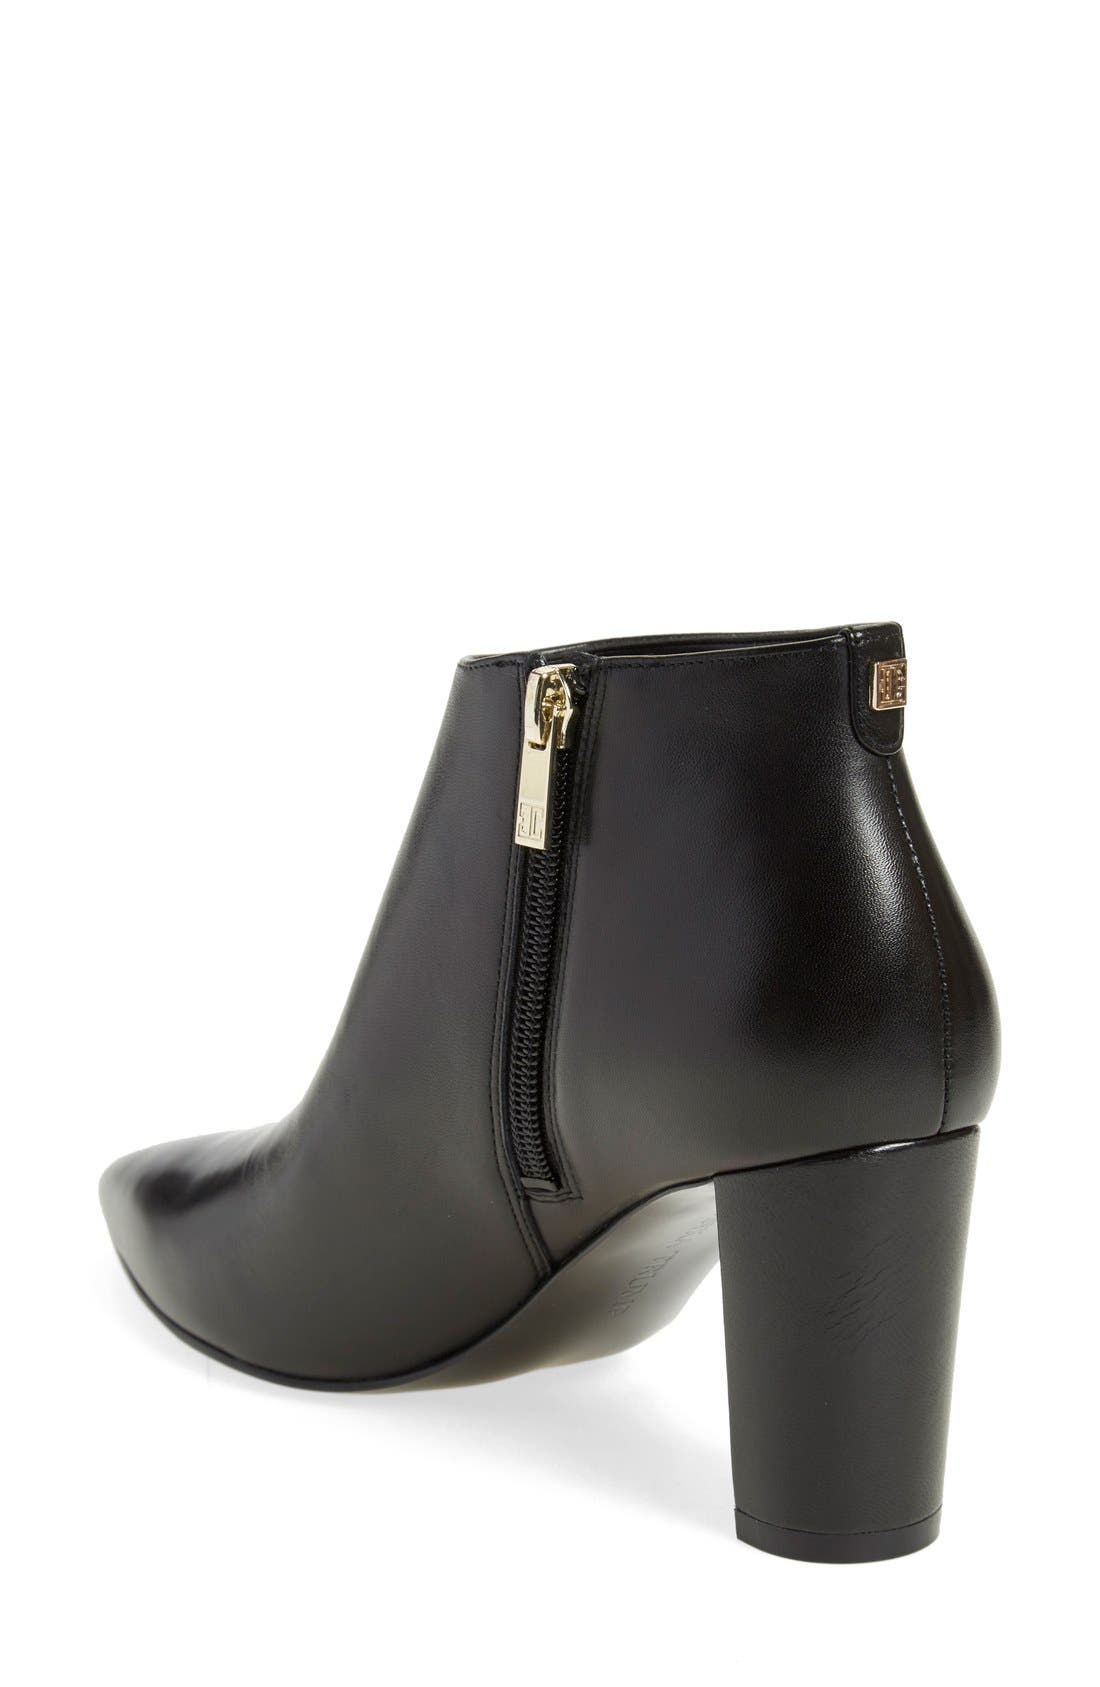 'Lettie' Pointy Toe Bootie,                             Alternate thumbnail 2, color,                             Black Leather